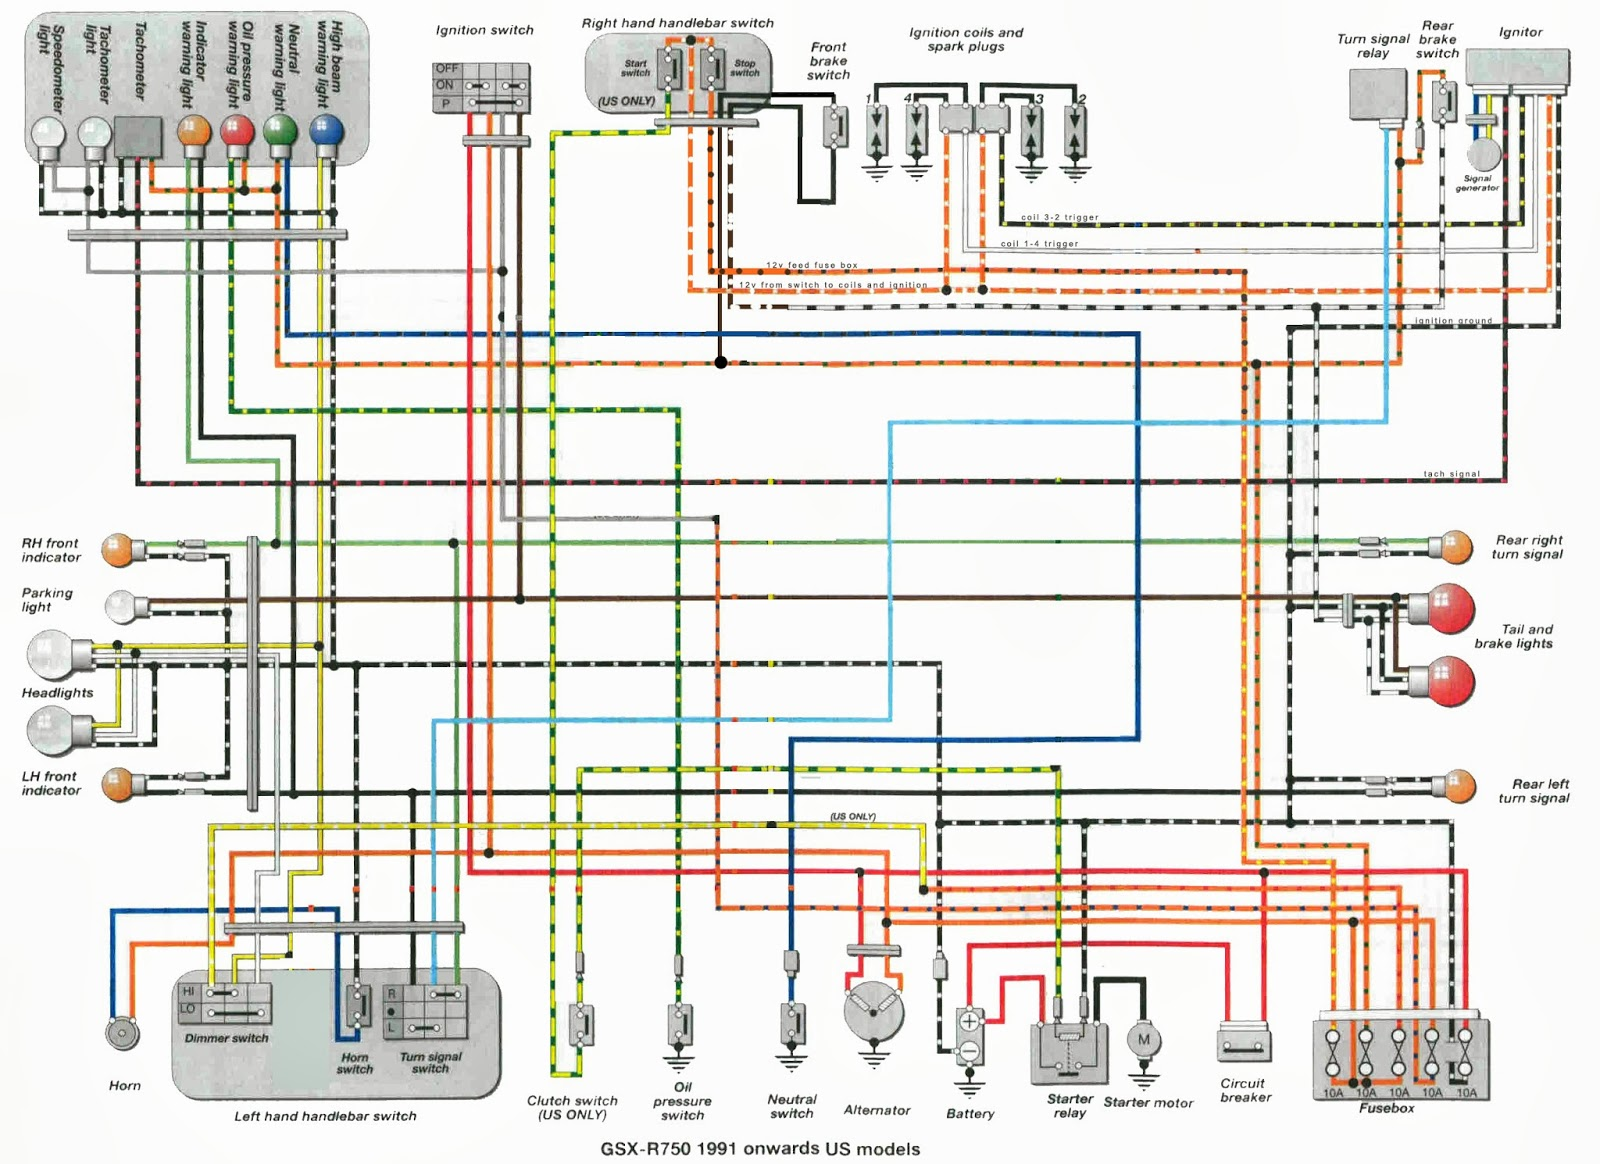 2004 peterbilt 379 wiring harness diagram 41 wiring diagram images rh cita  asia 2005 Peterbilt 379